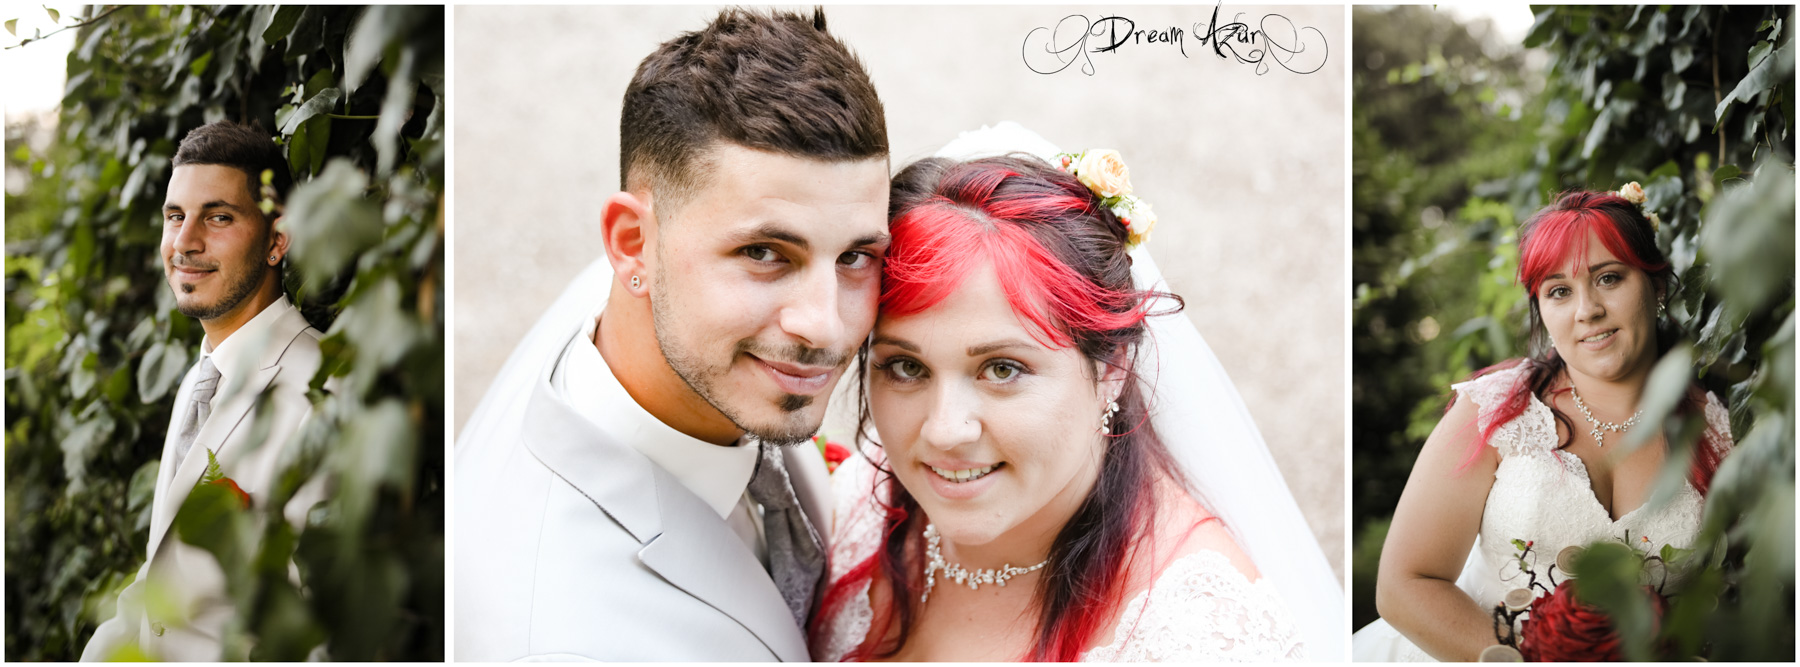 190824COMPO-Mariage-Cindy-et-Anthony-68